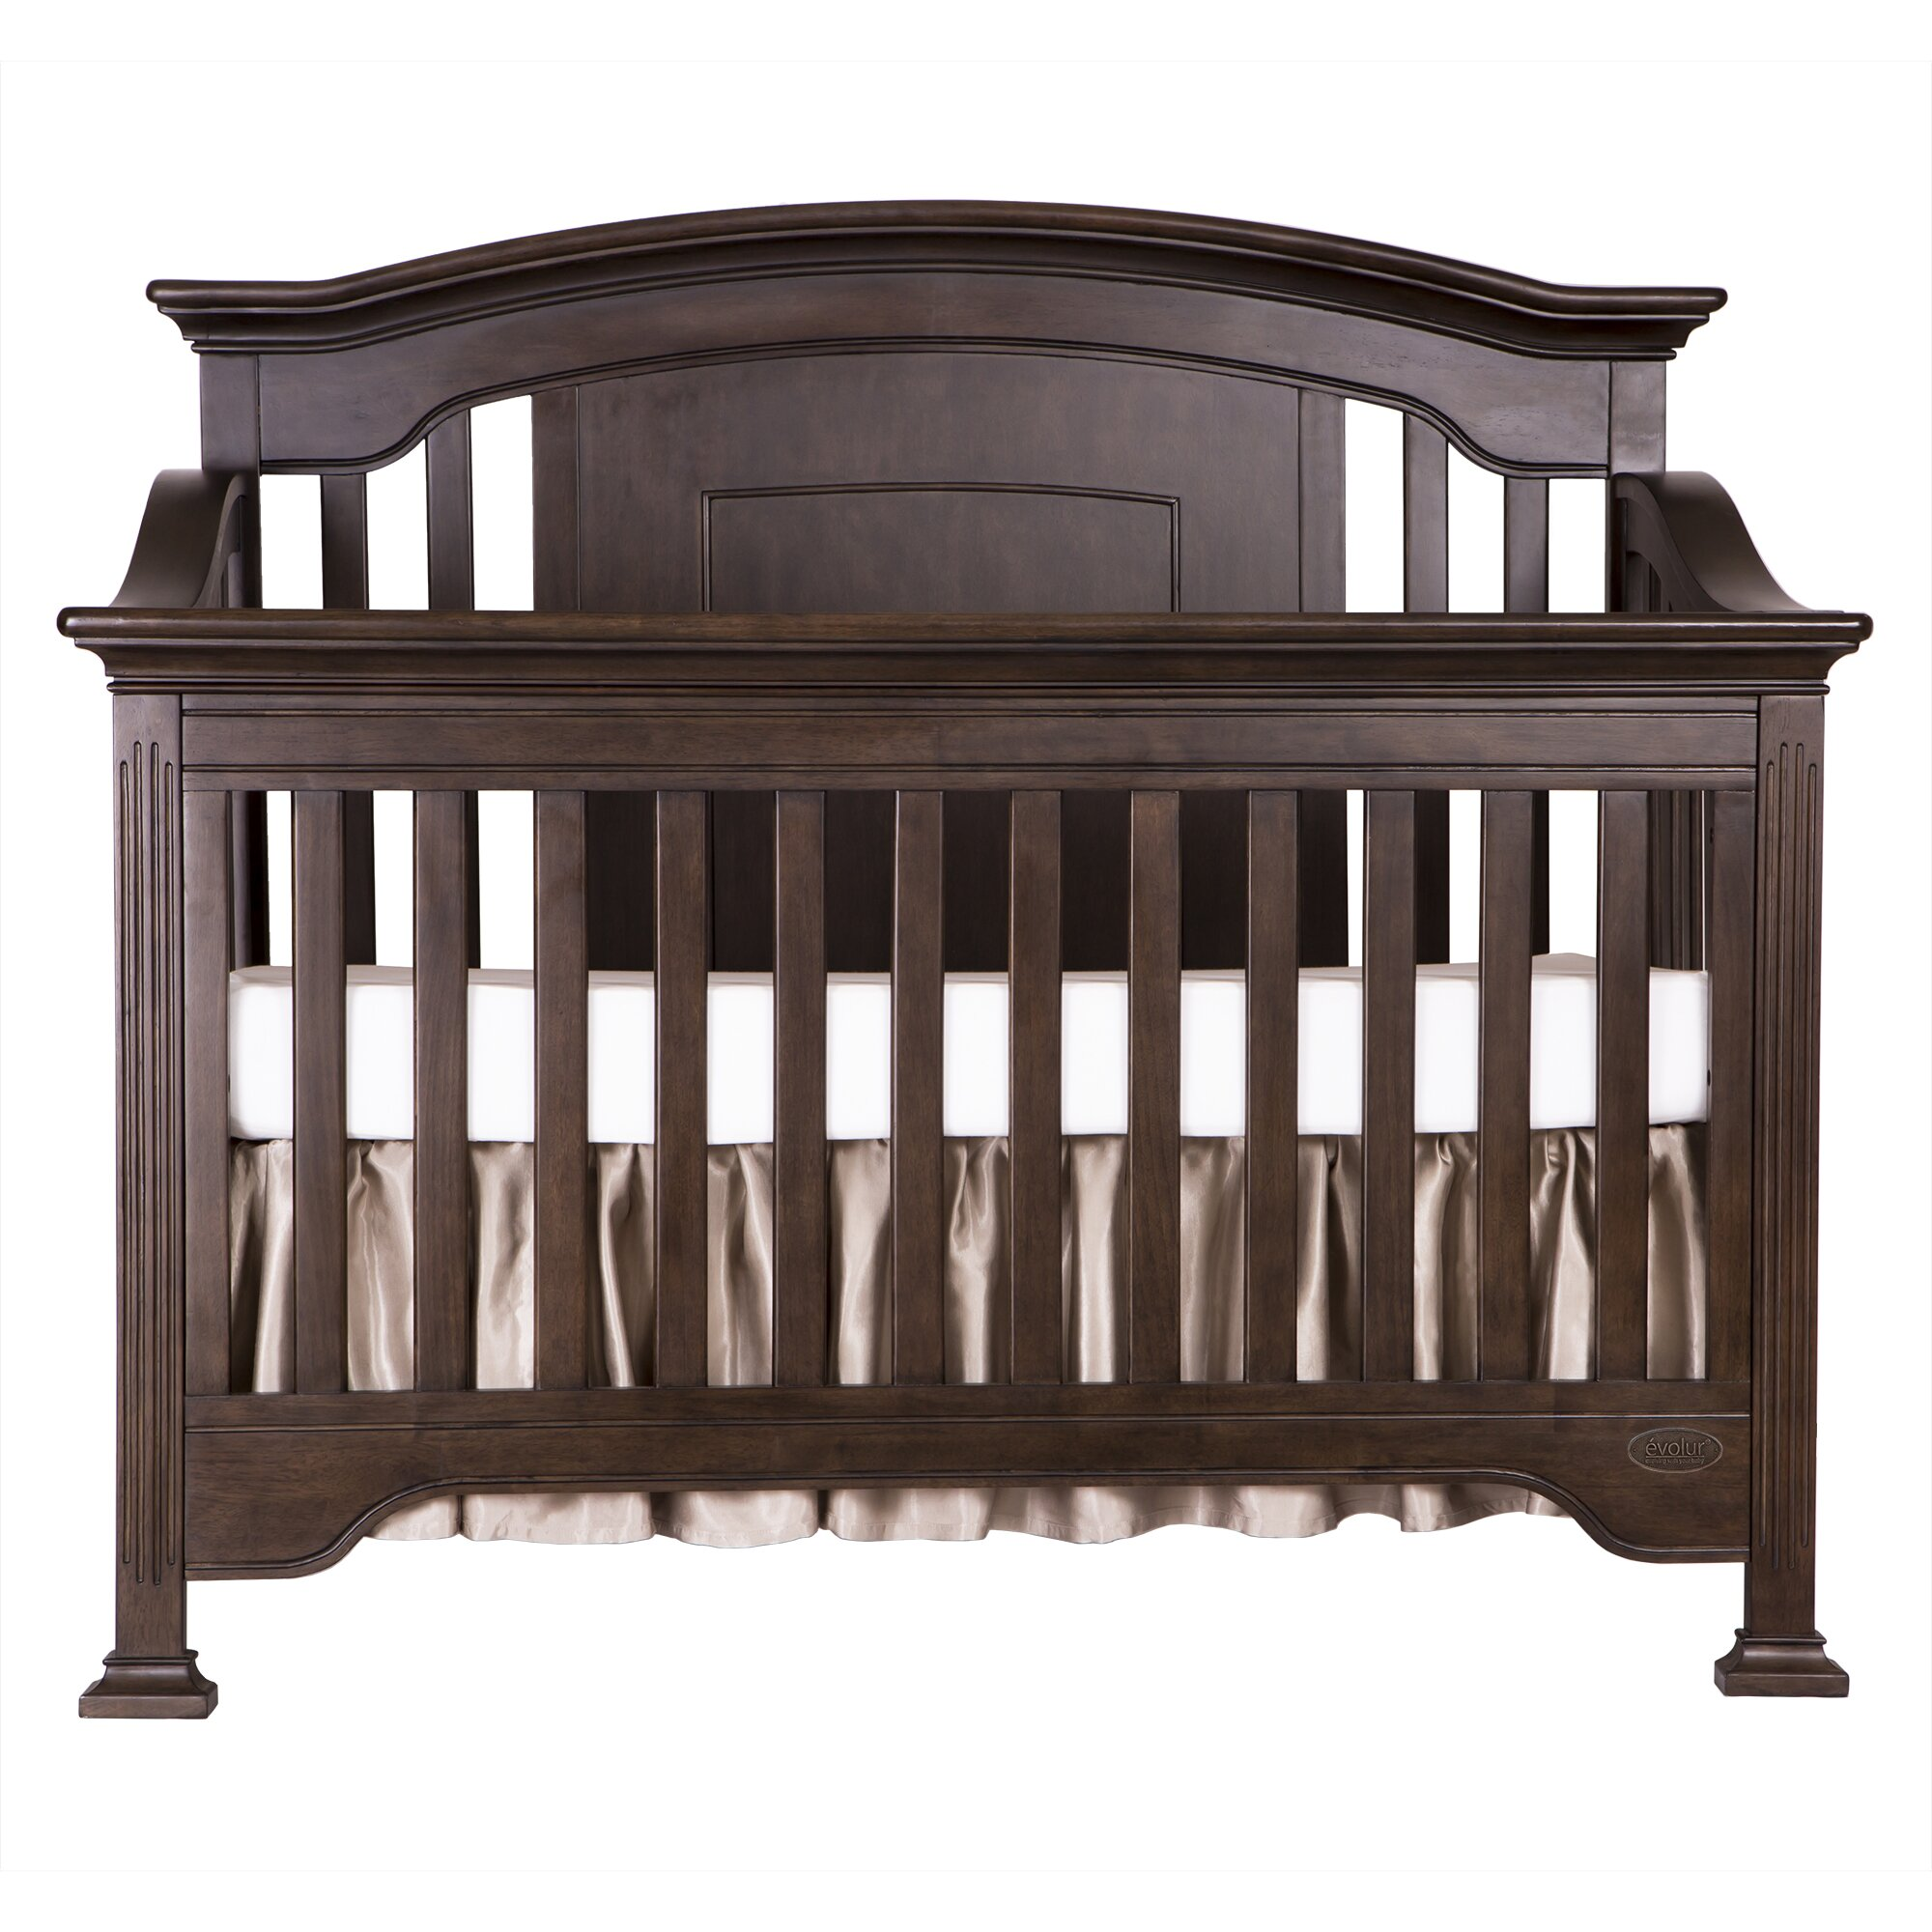 Evolur sawyer 5 in 1 convertible crib wayfair for 5 in 1 bed